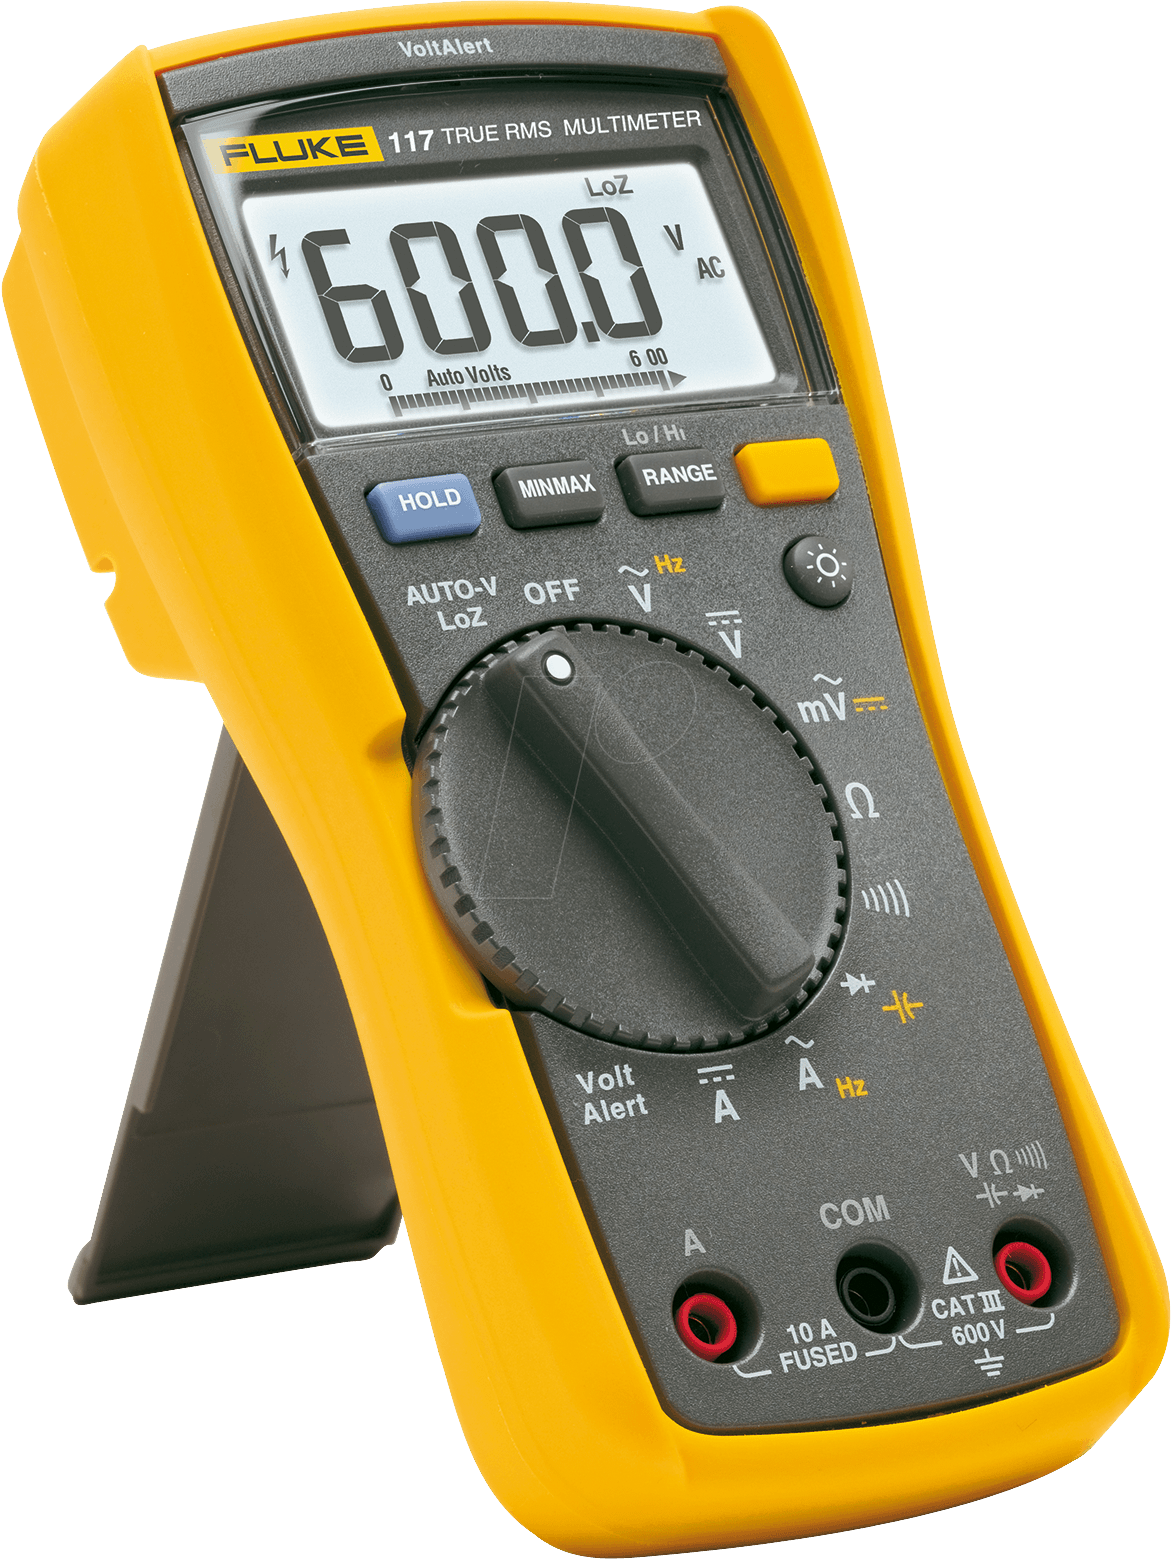 fluke 117 multimeter 117 digital 6000 counts trms bei reichelt elektronik. Black Bedroom Furniture Sets. Home Design Ideas